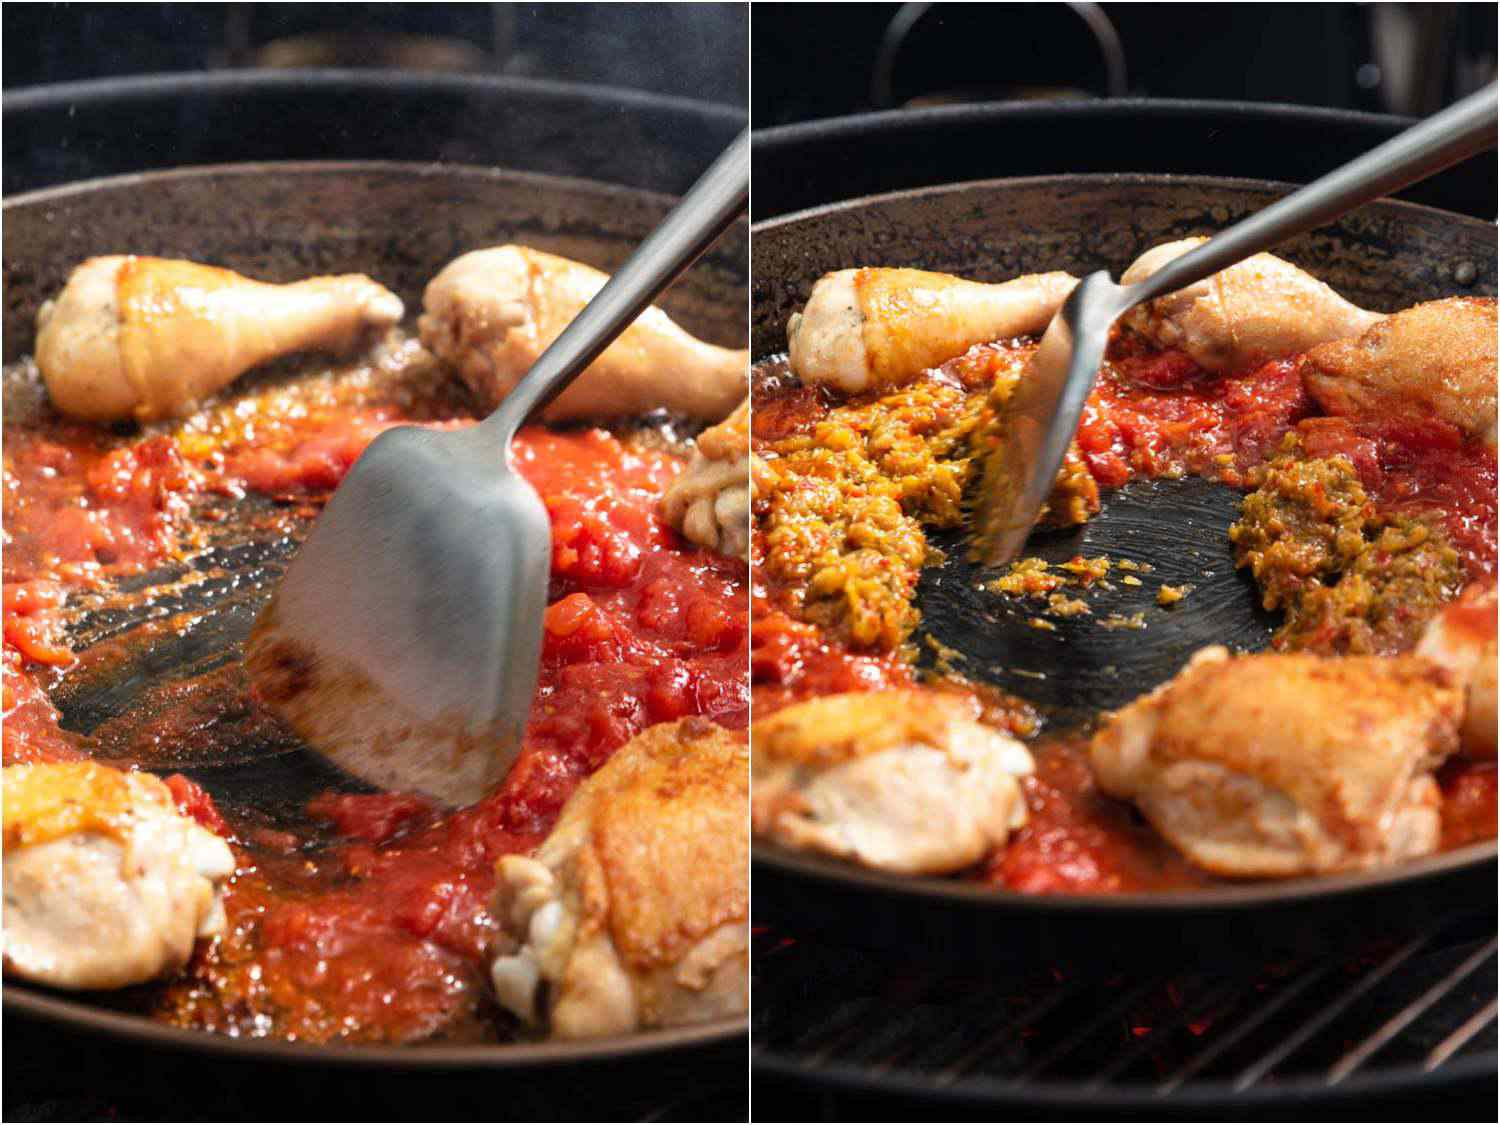 20190618-grilled-paella-vicky-wasik-meat-only-collage2